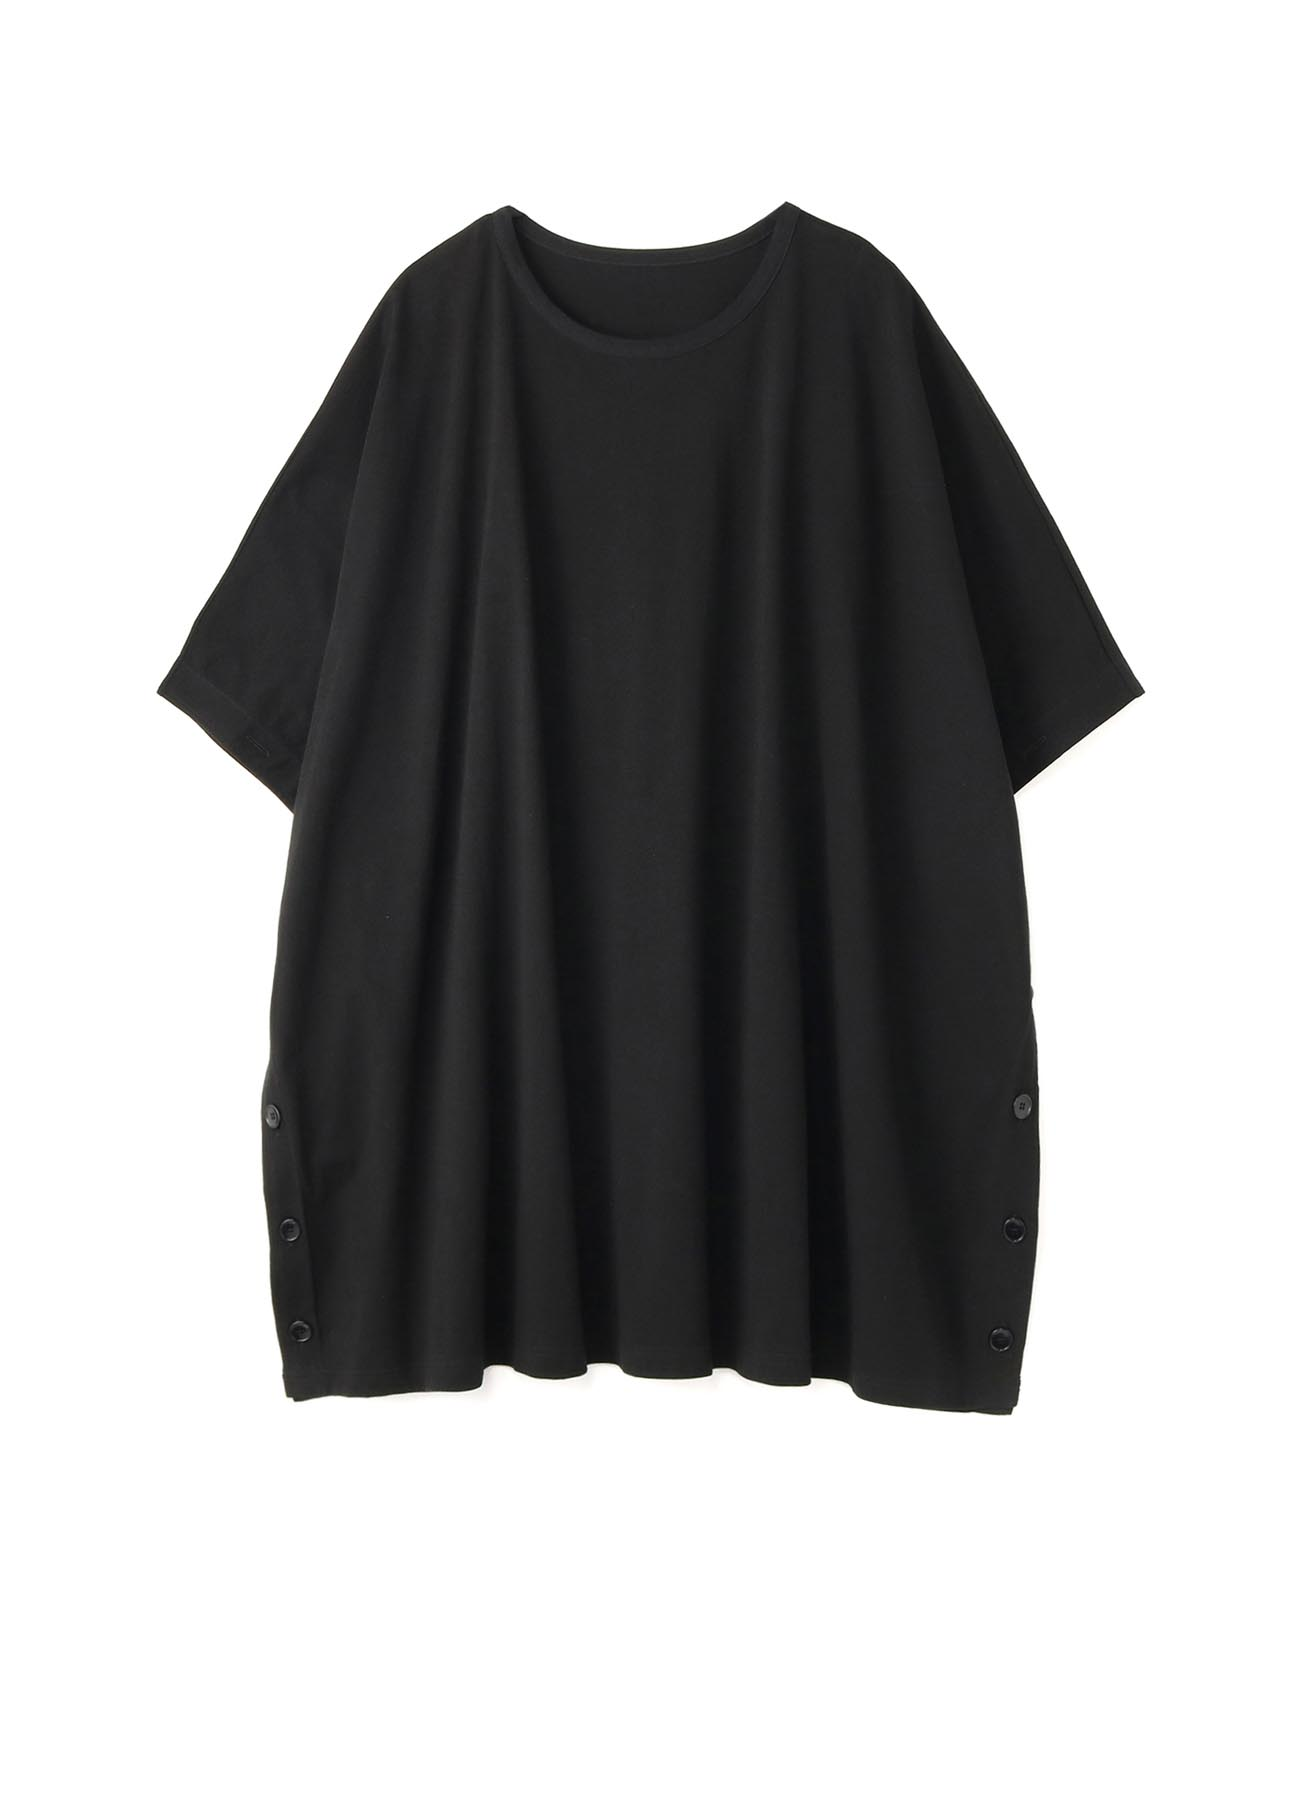 30/Cotton Jersey Big Poncho Cut Sew